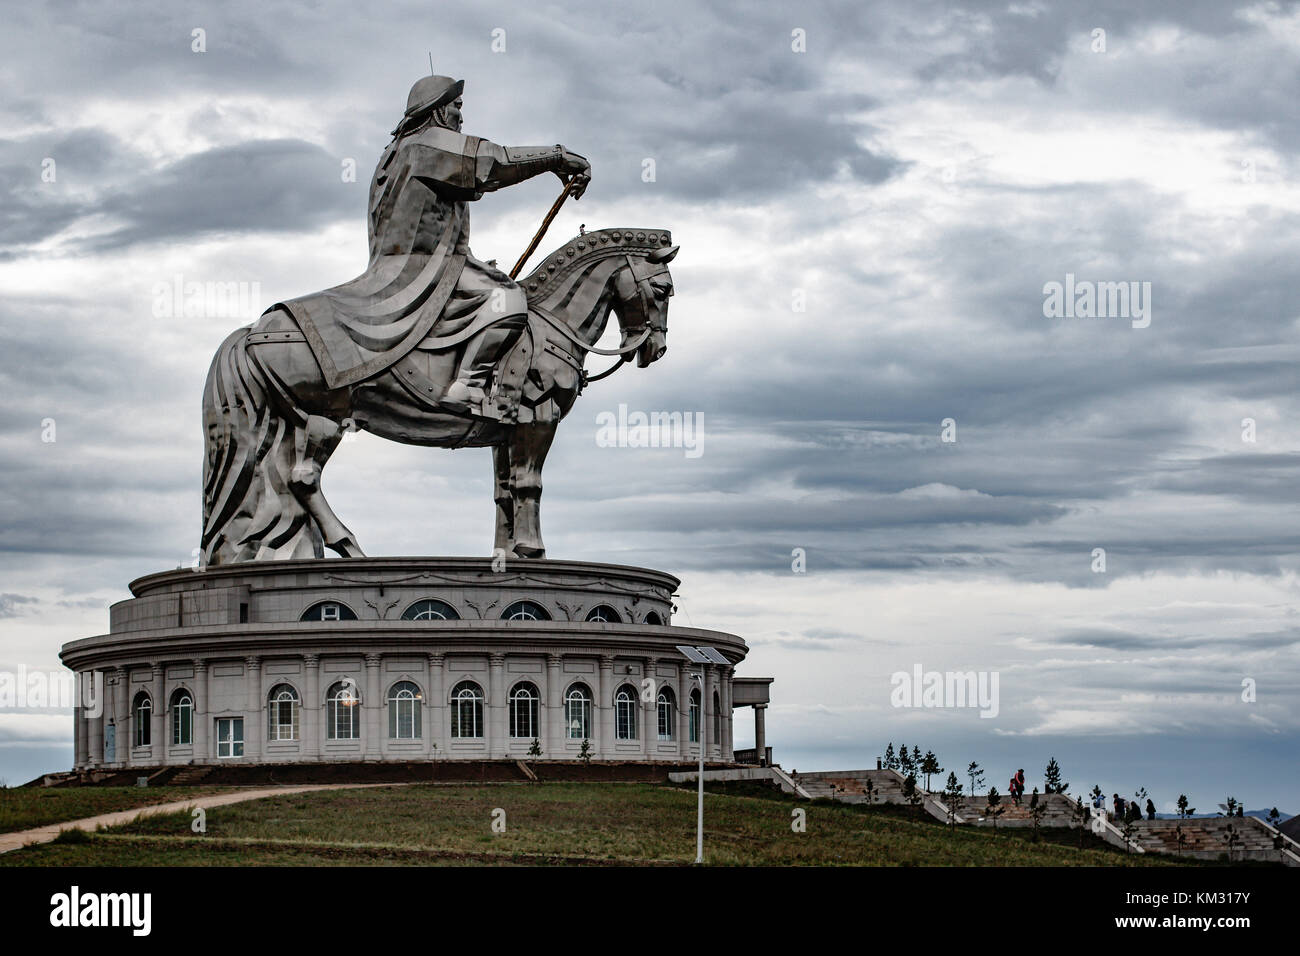 Giant Genghis Khan Equestrian Statue in Ulaanbaatar, Mongolia Stock Photo